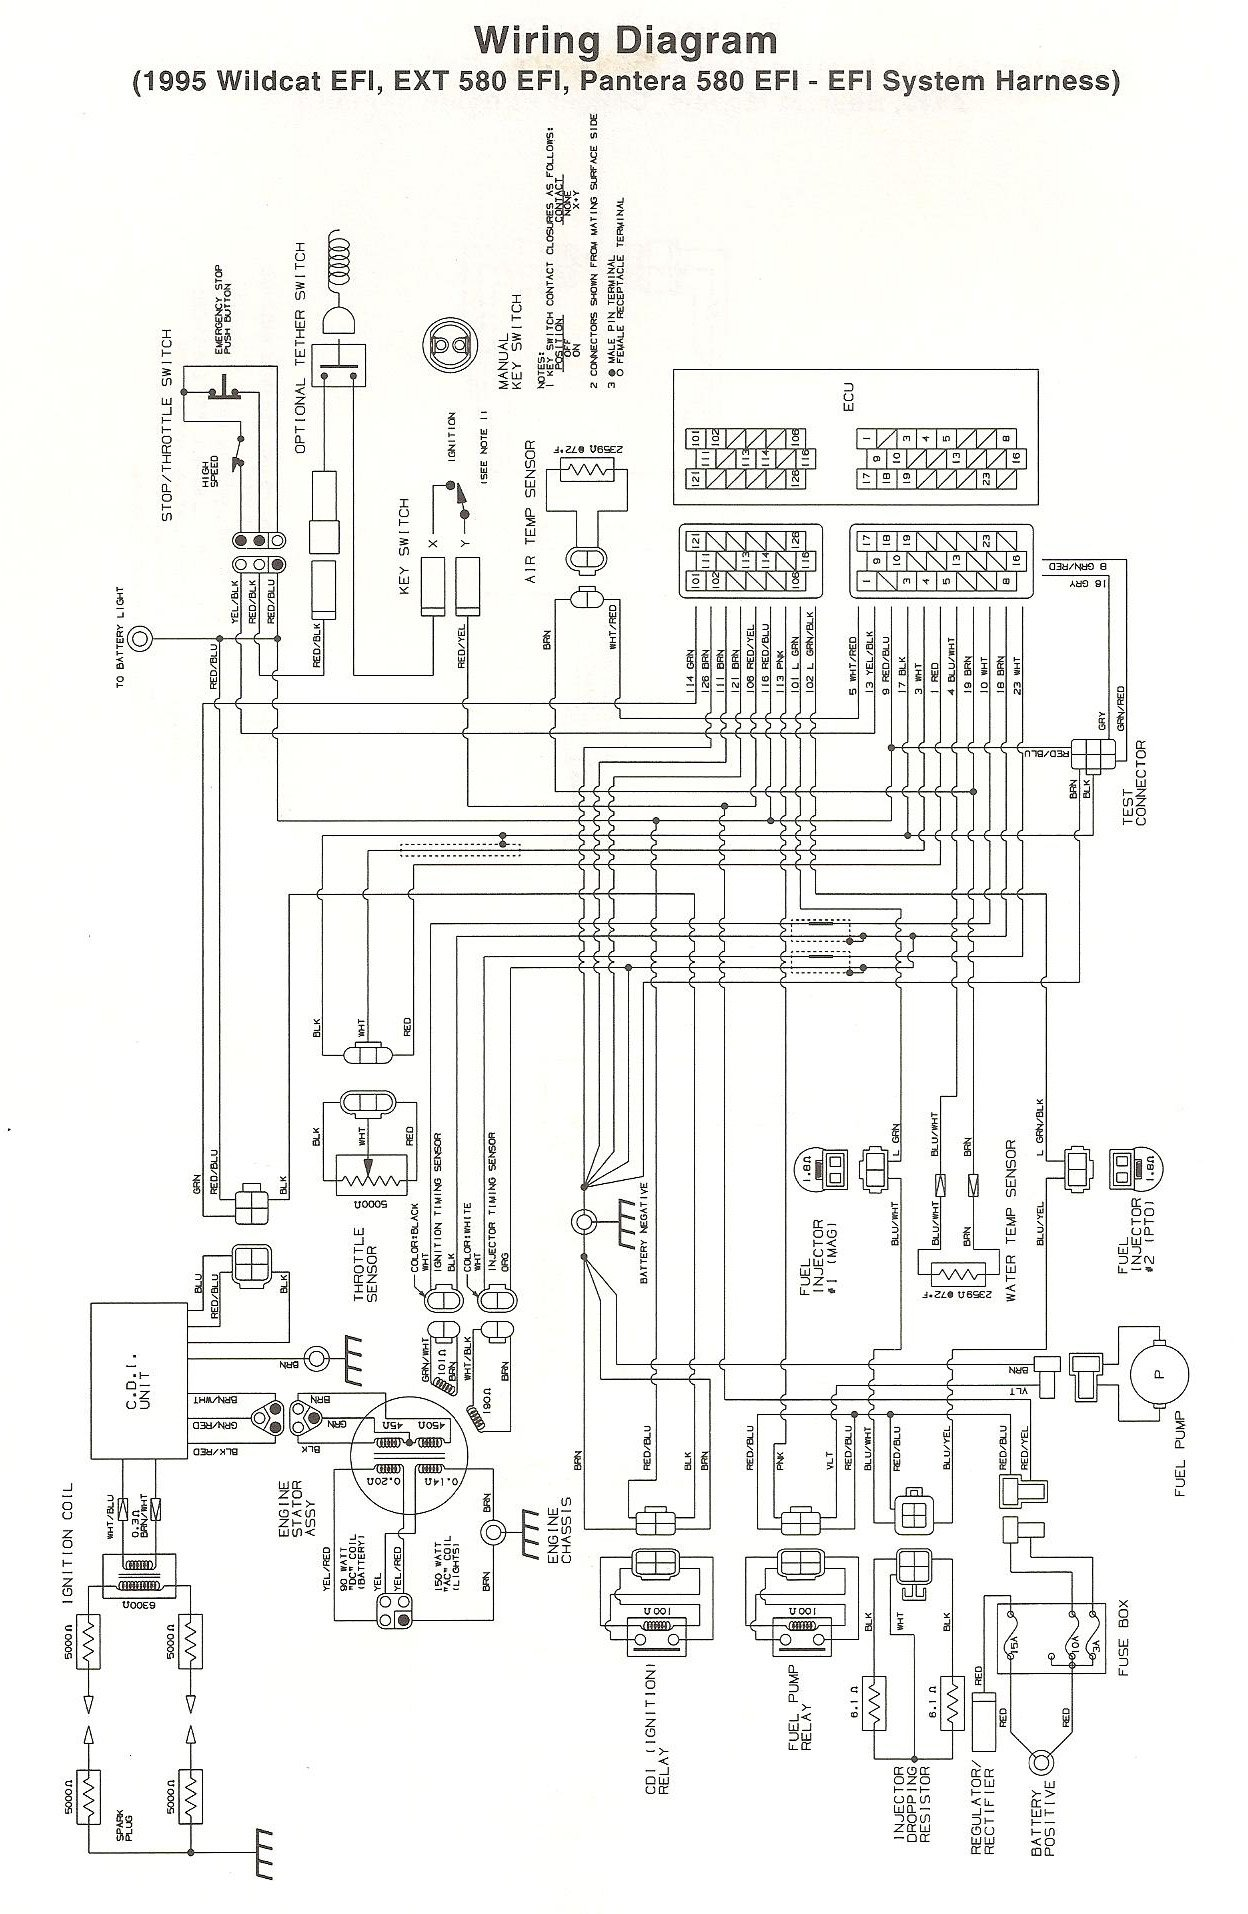 [DIAGRAM] Arctic Cat Wildcat 650 Wiring Diagram FULL